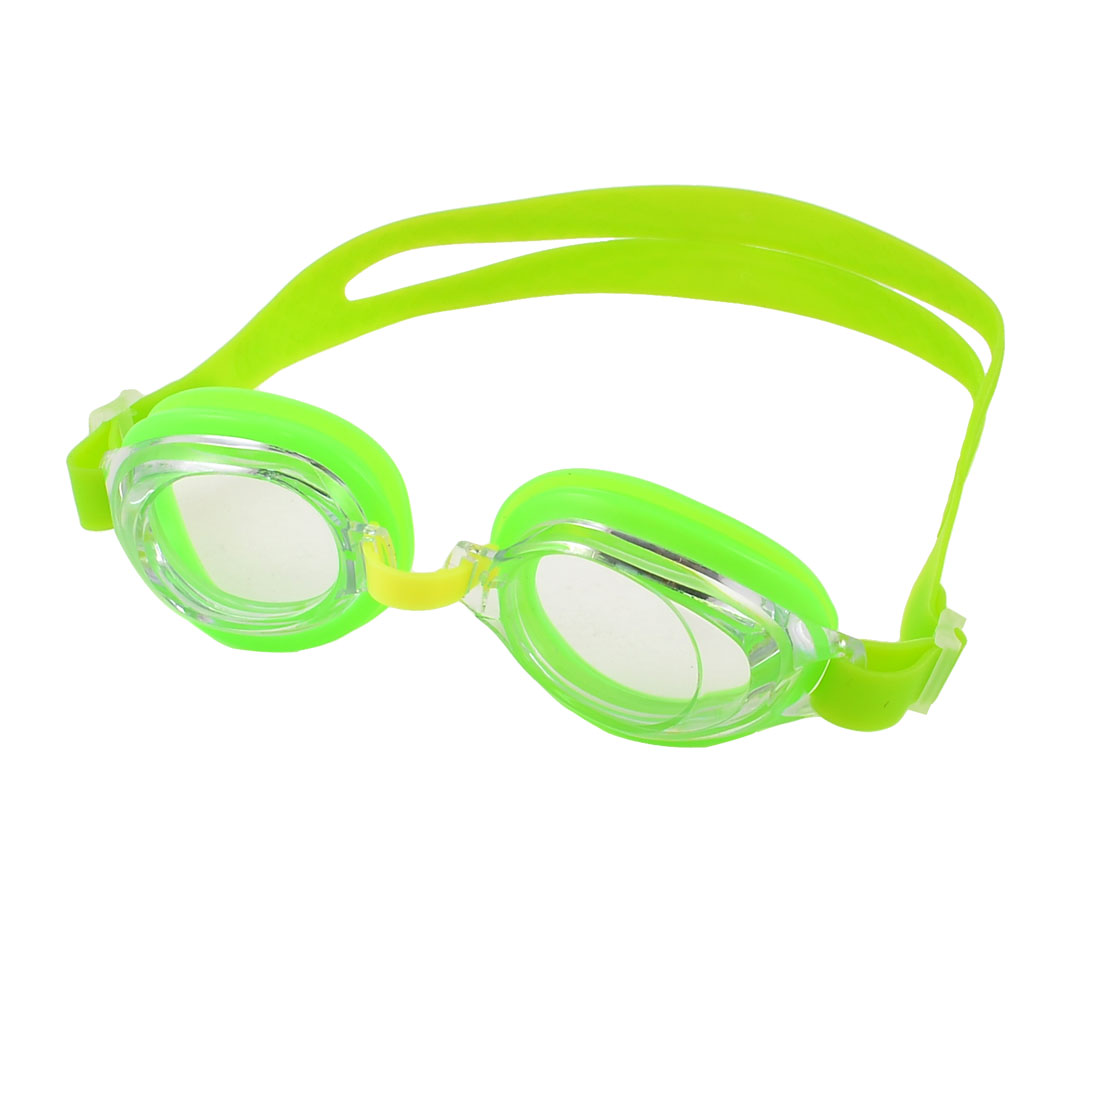 Unique Bargains Silicone Strap Clear Lens Water Sports Glasses Green Swim Goggles For Children by